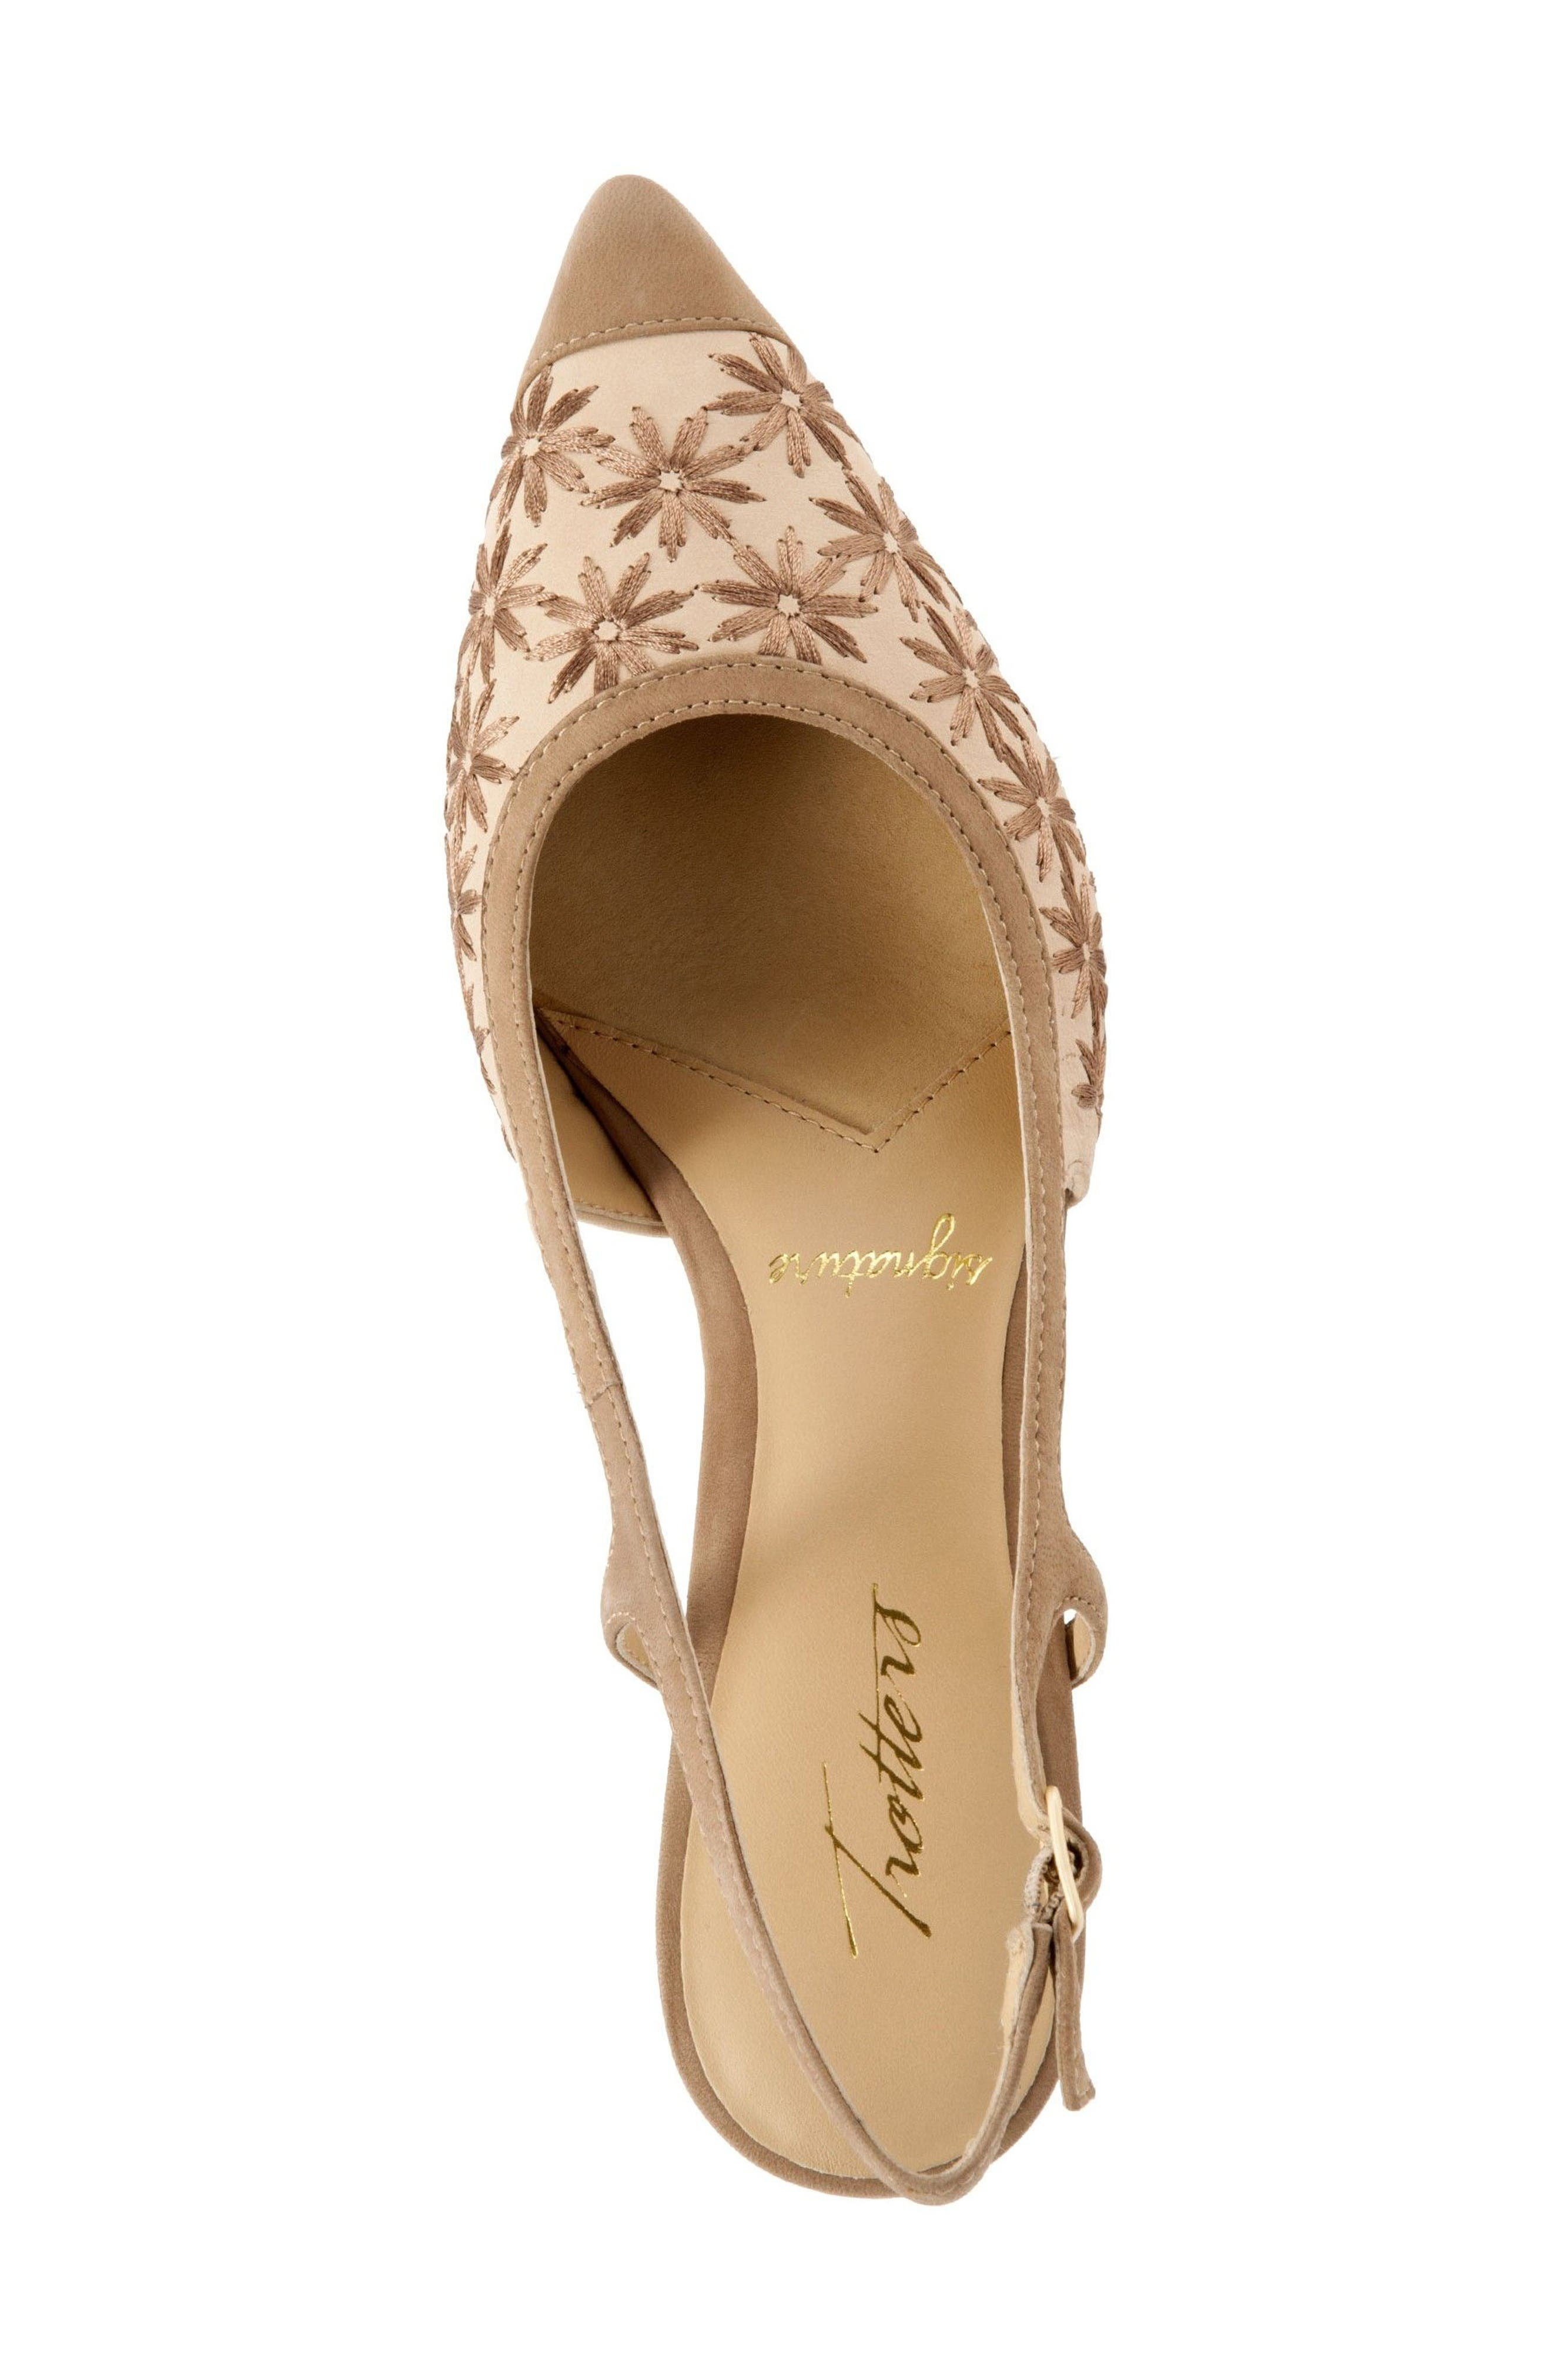 'Kimberly' Woven Leather Slingback Pump,                             Alternate thumbnail 3, color,                             Dark Tan/ Sand/ Bronze Leather